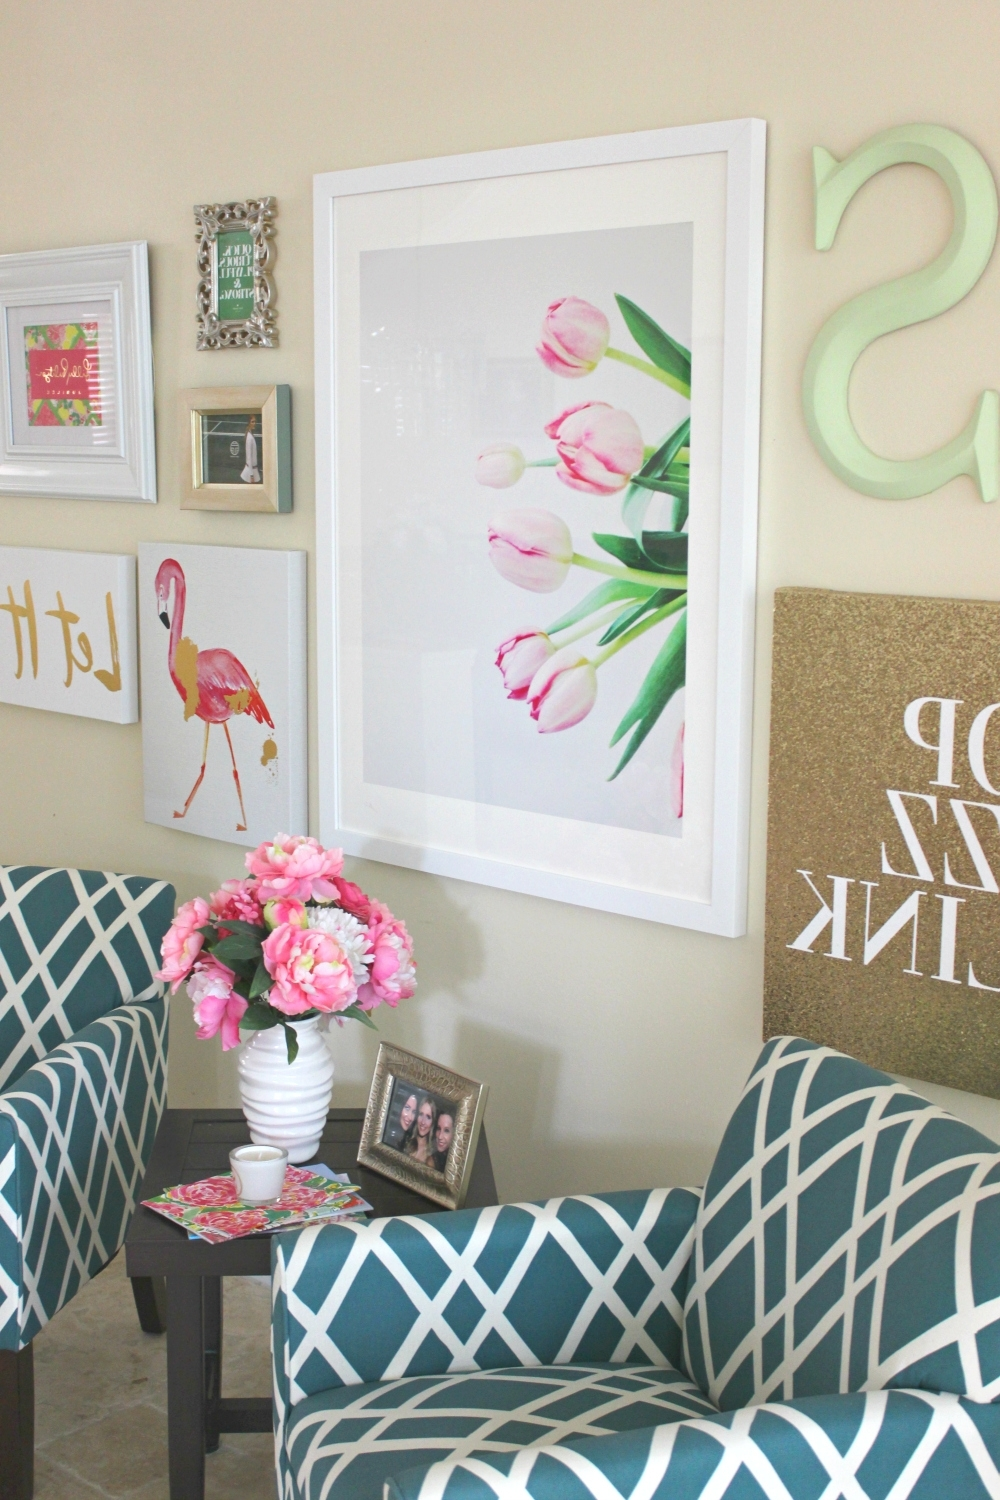 Most Recent Vibrant Wall Art Intended For Lilly Pulitzer Inspired Wall Art Collage (View 8 of 15)